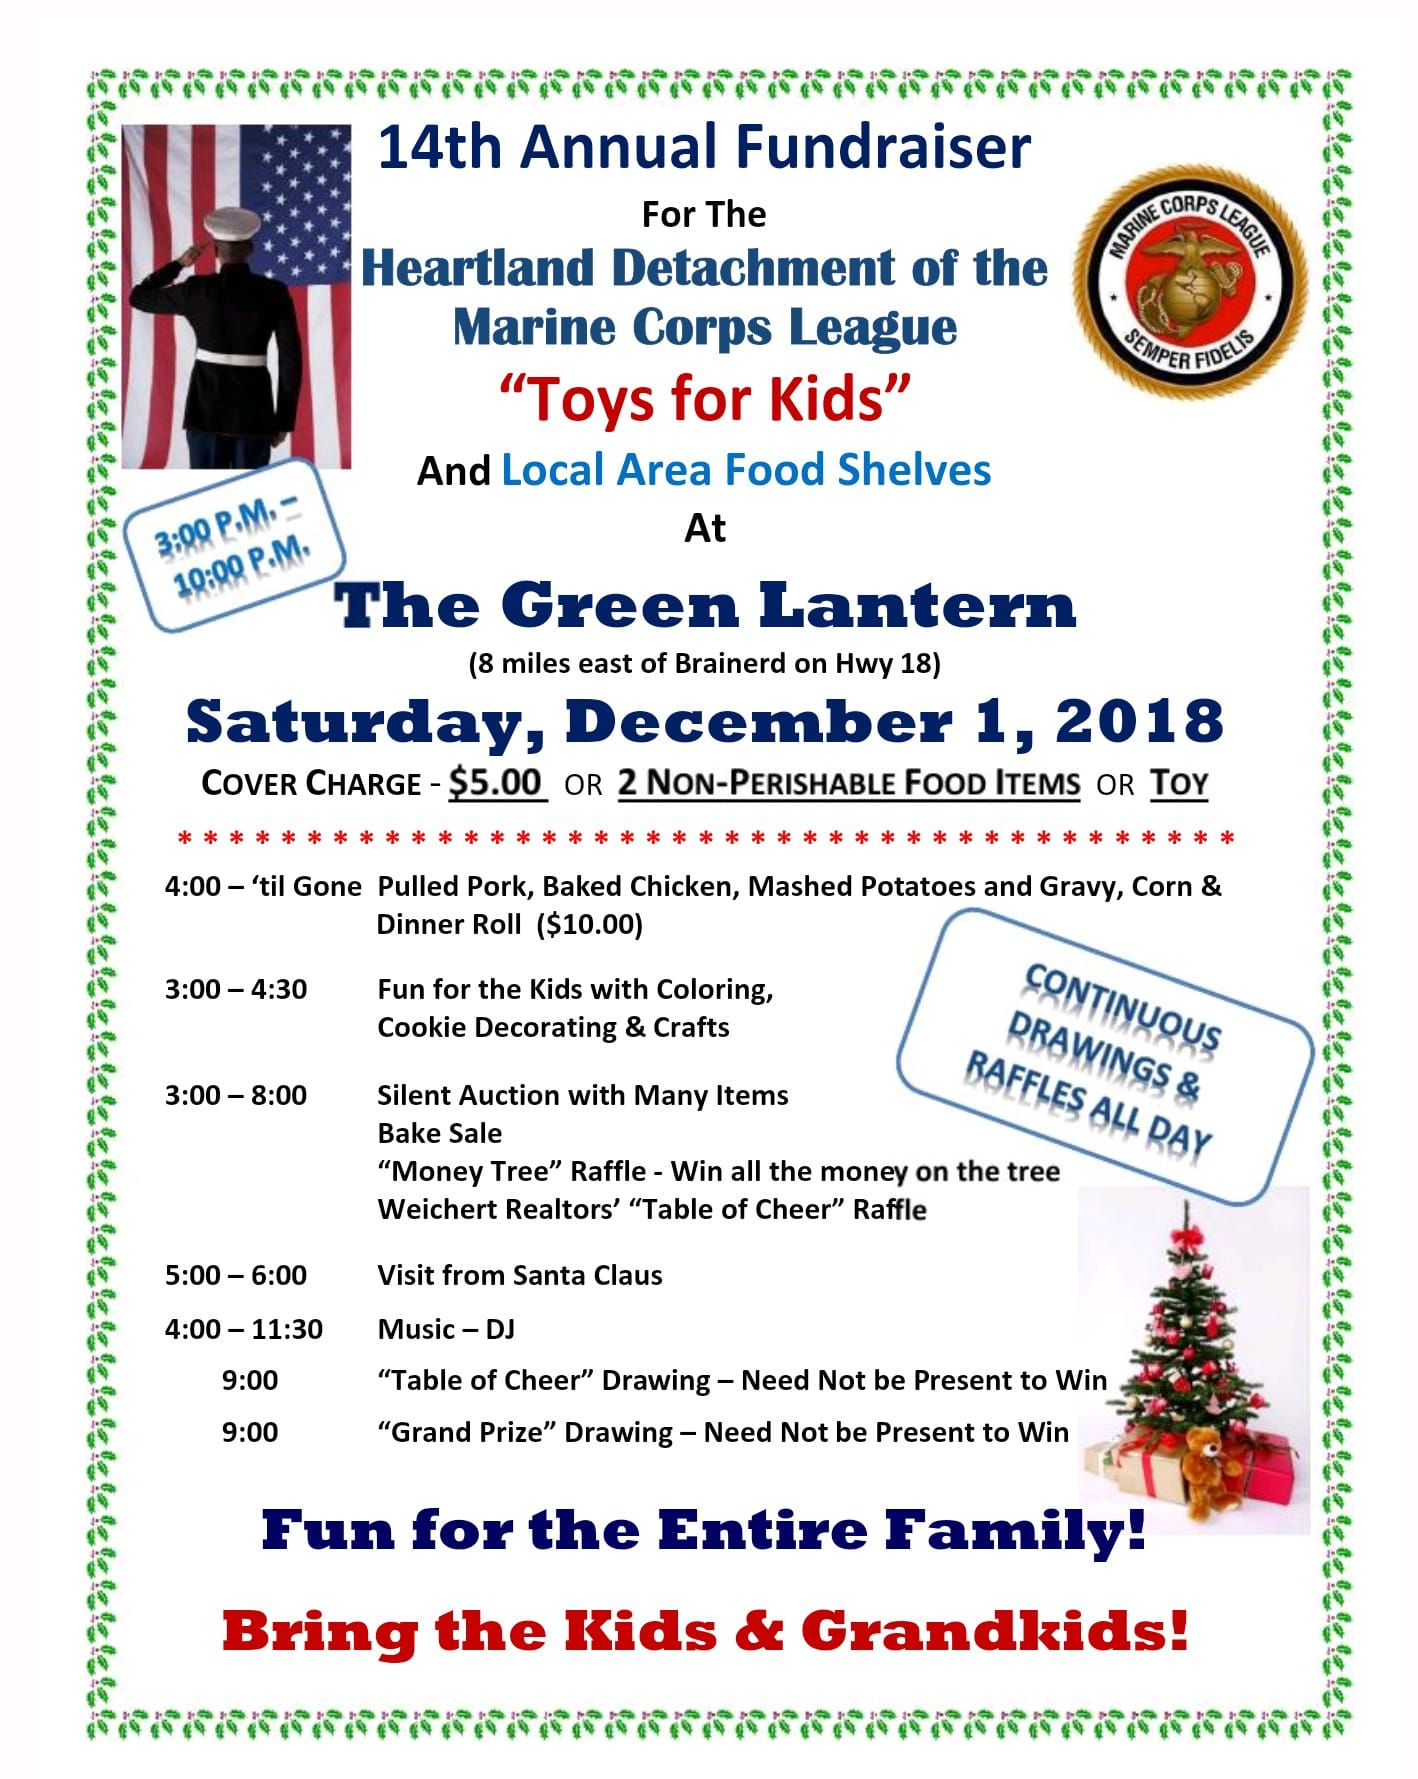 toys for kids fundraiser event at green lantern bar and grill